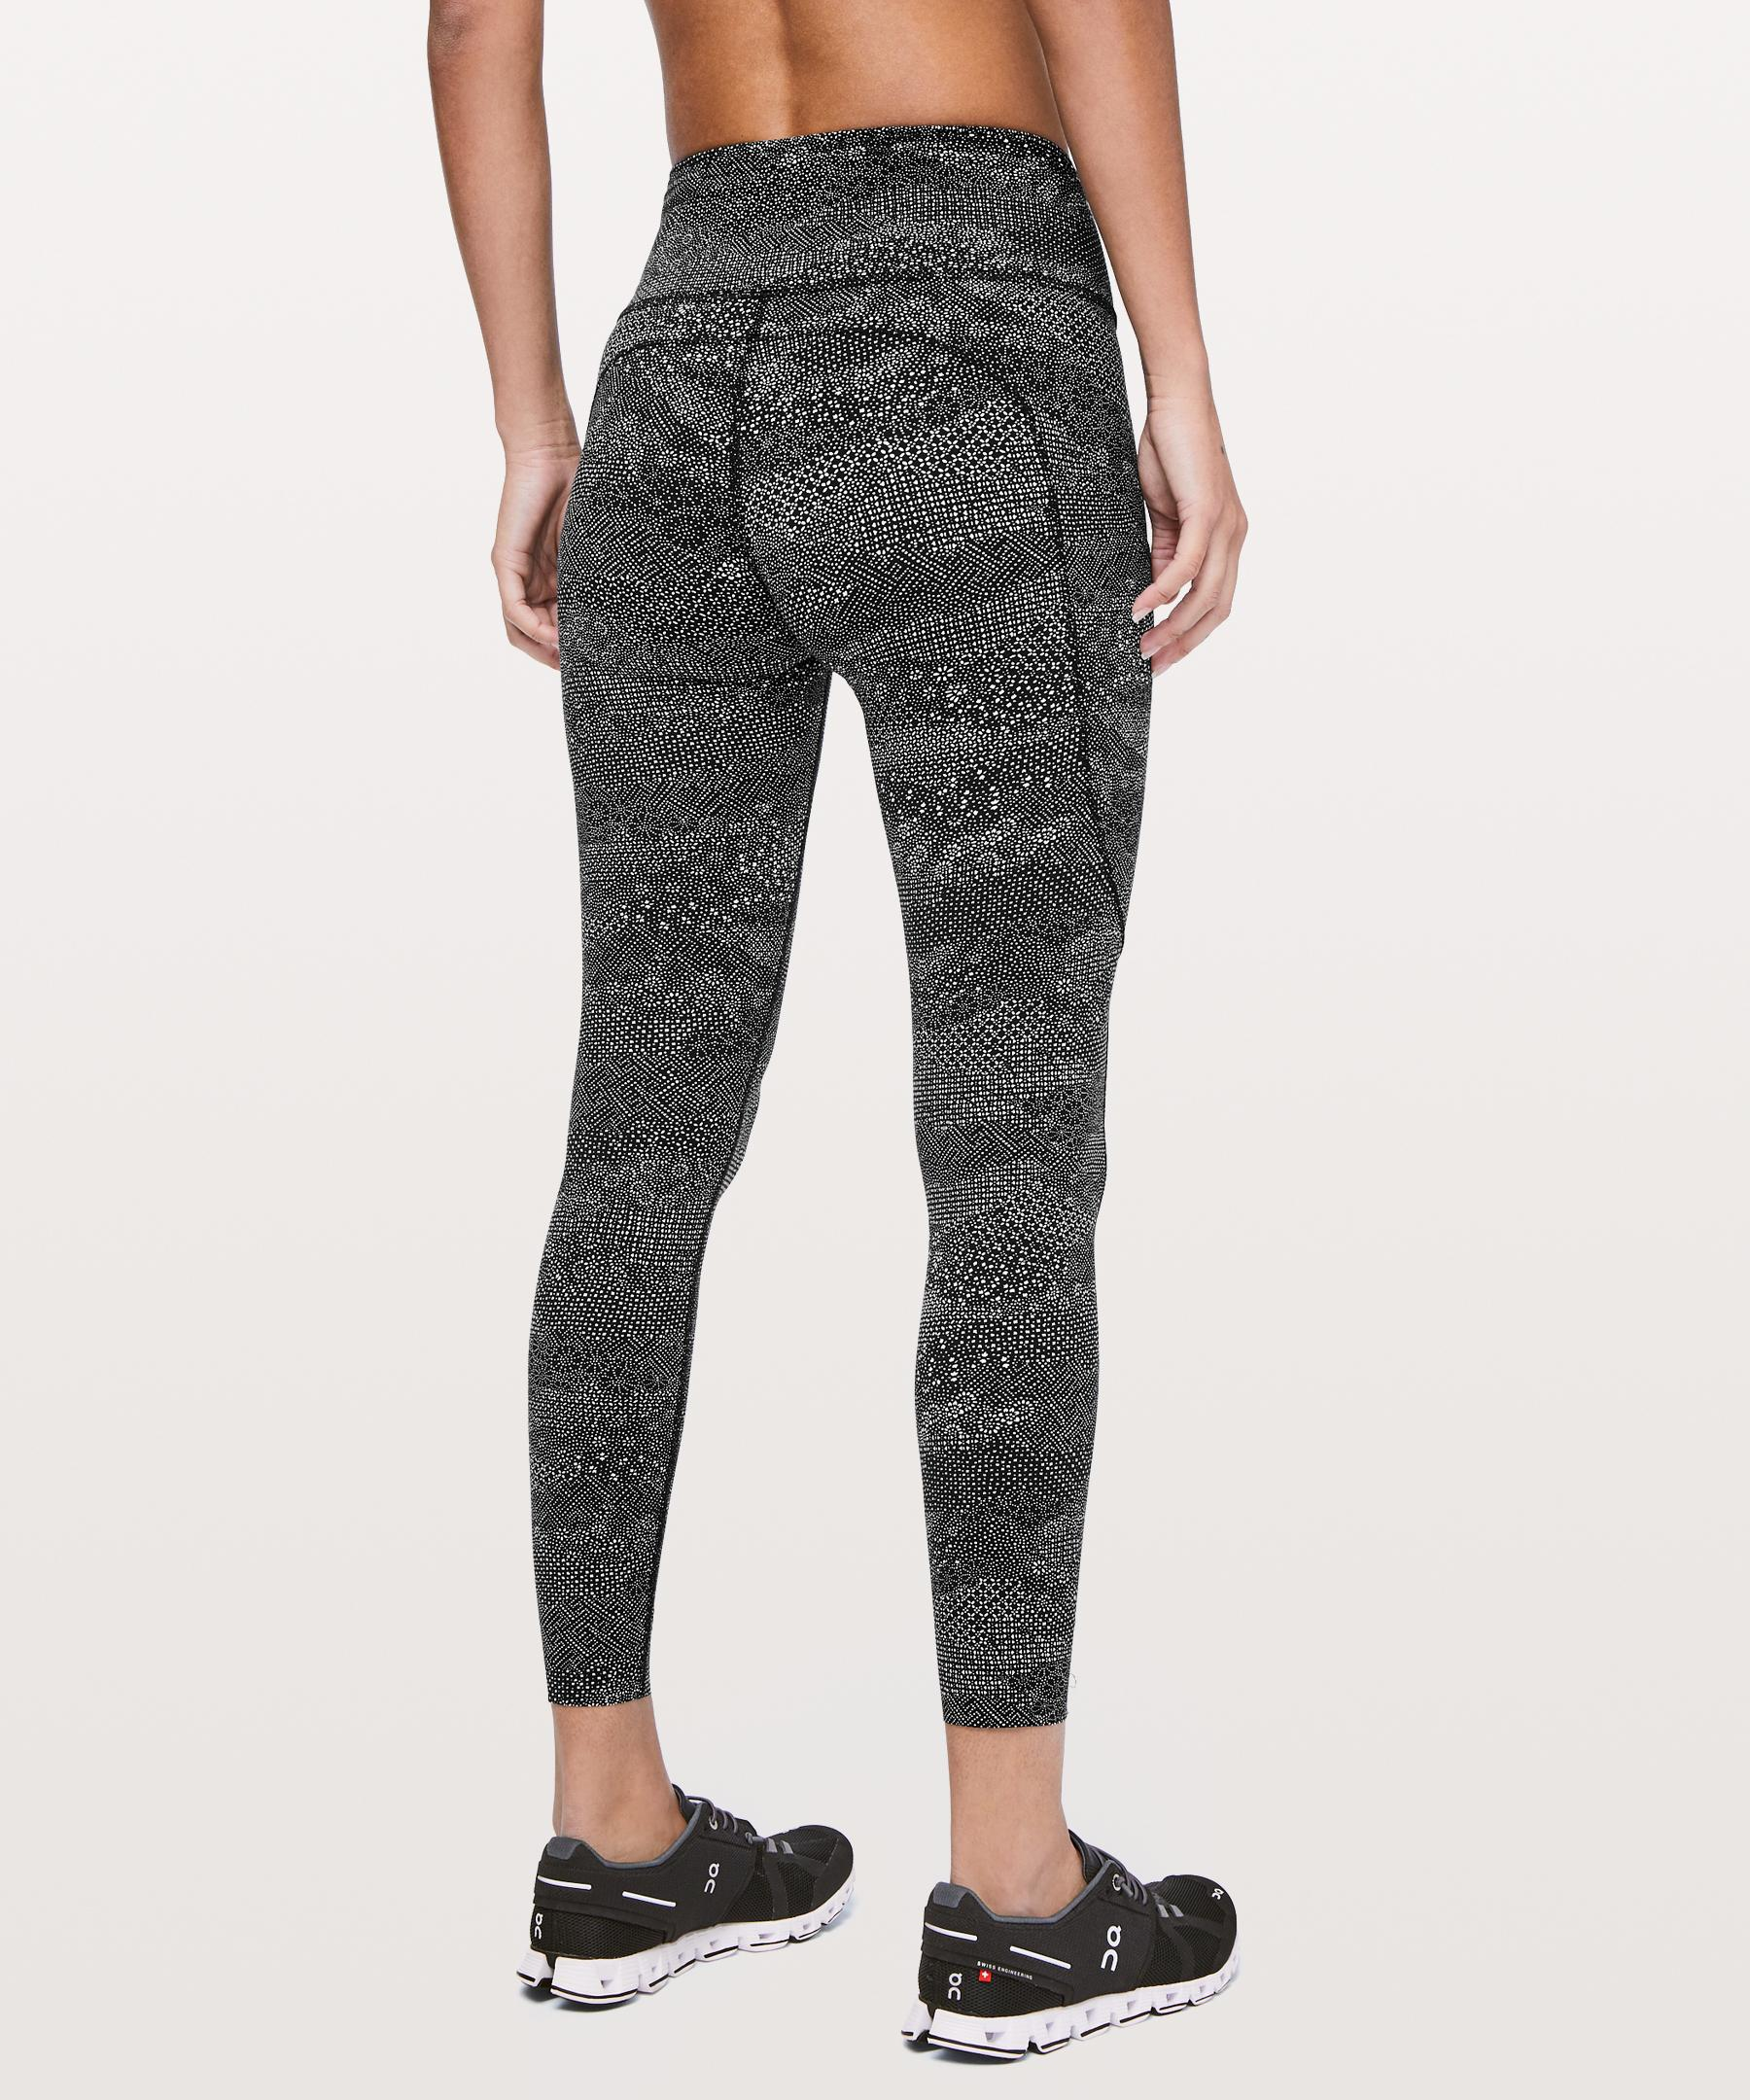 separation shoes 6114a c57bc lululemon athletica Fast And Free 7 8 Tight Ii in Black - Lyst